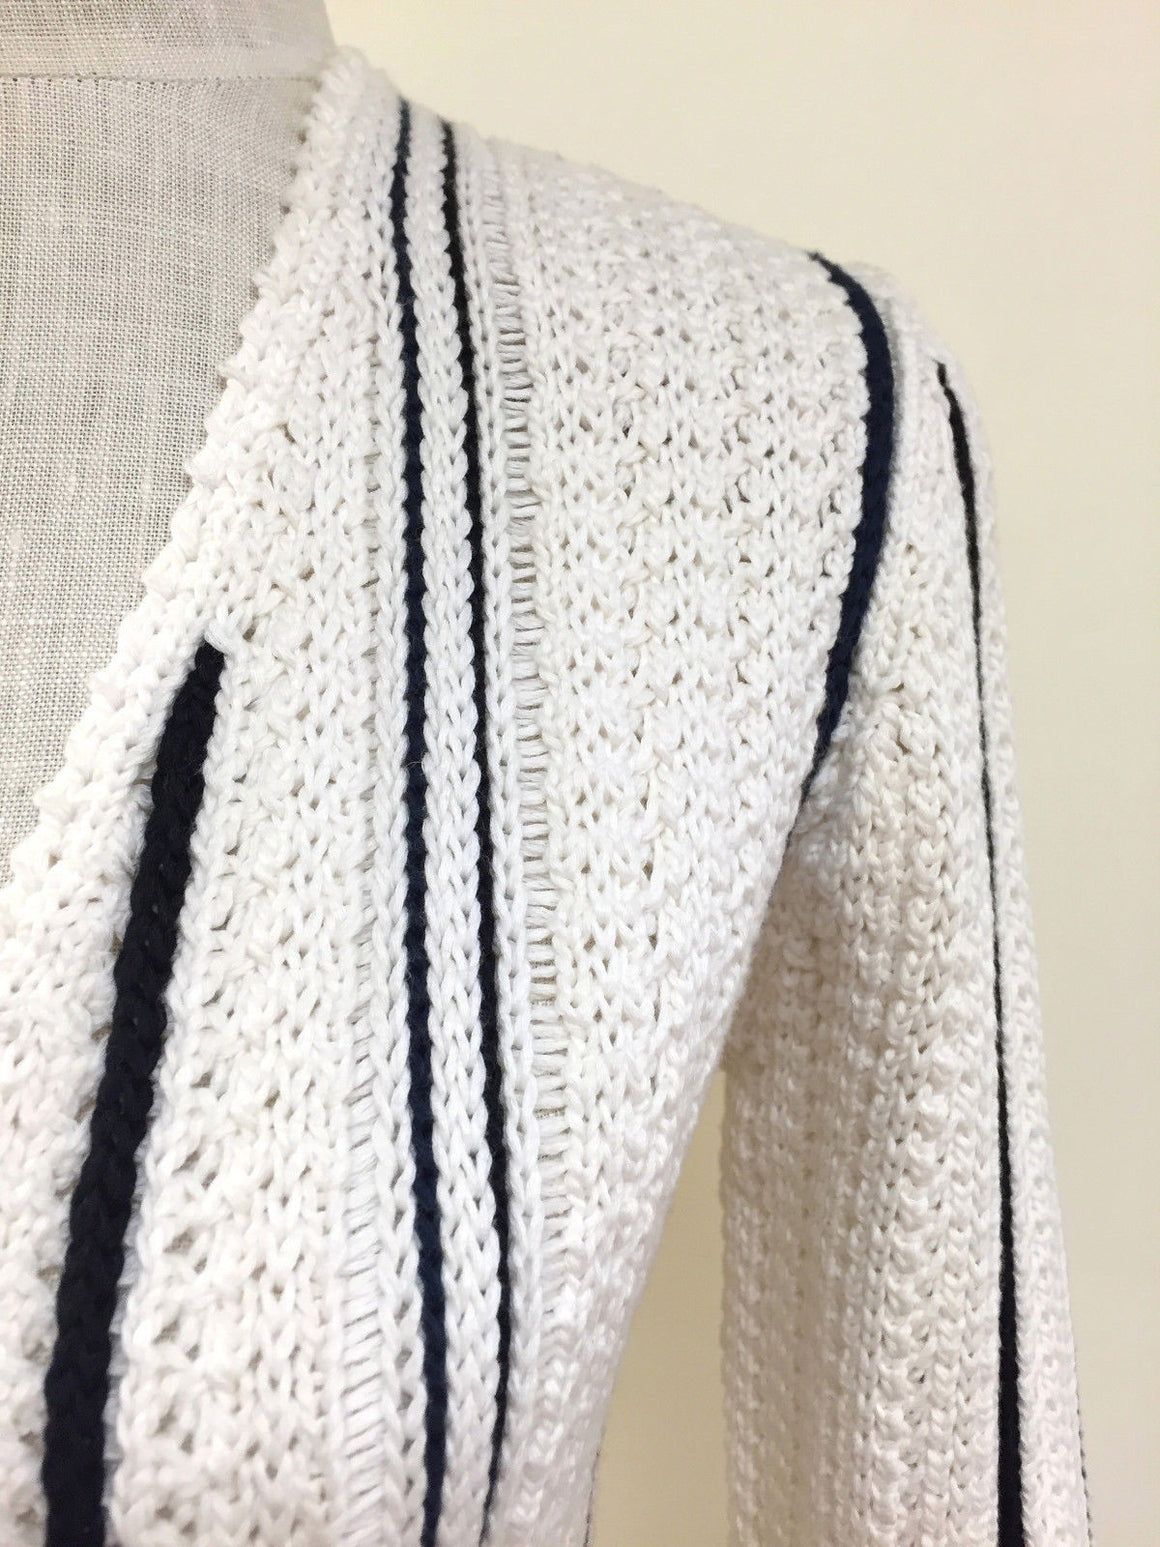 bisbiz.com CHANEL   Spring 2006  White/Black Cotton/Cashmere Knit Jacket Cardigan  Size: 38/6 - Bis Luxury Resale